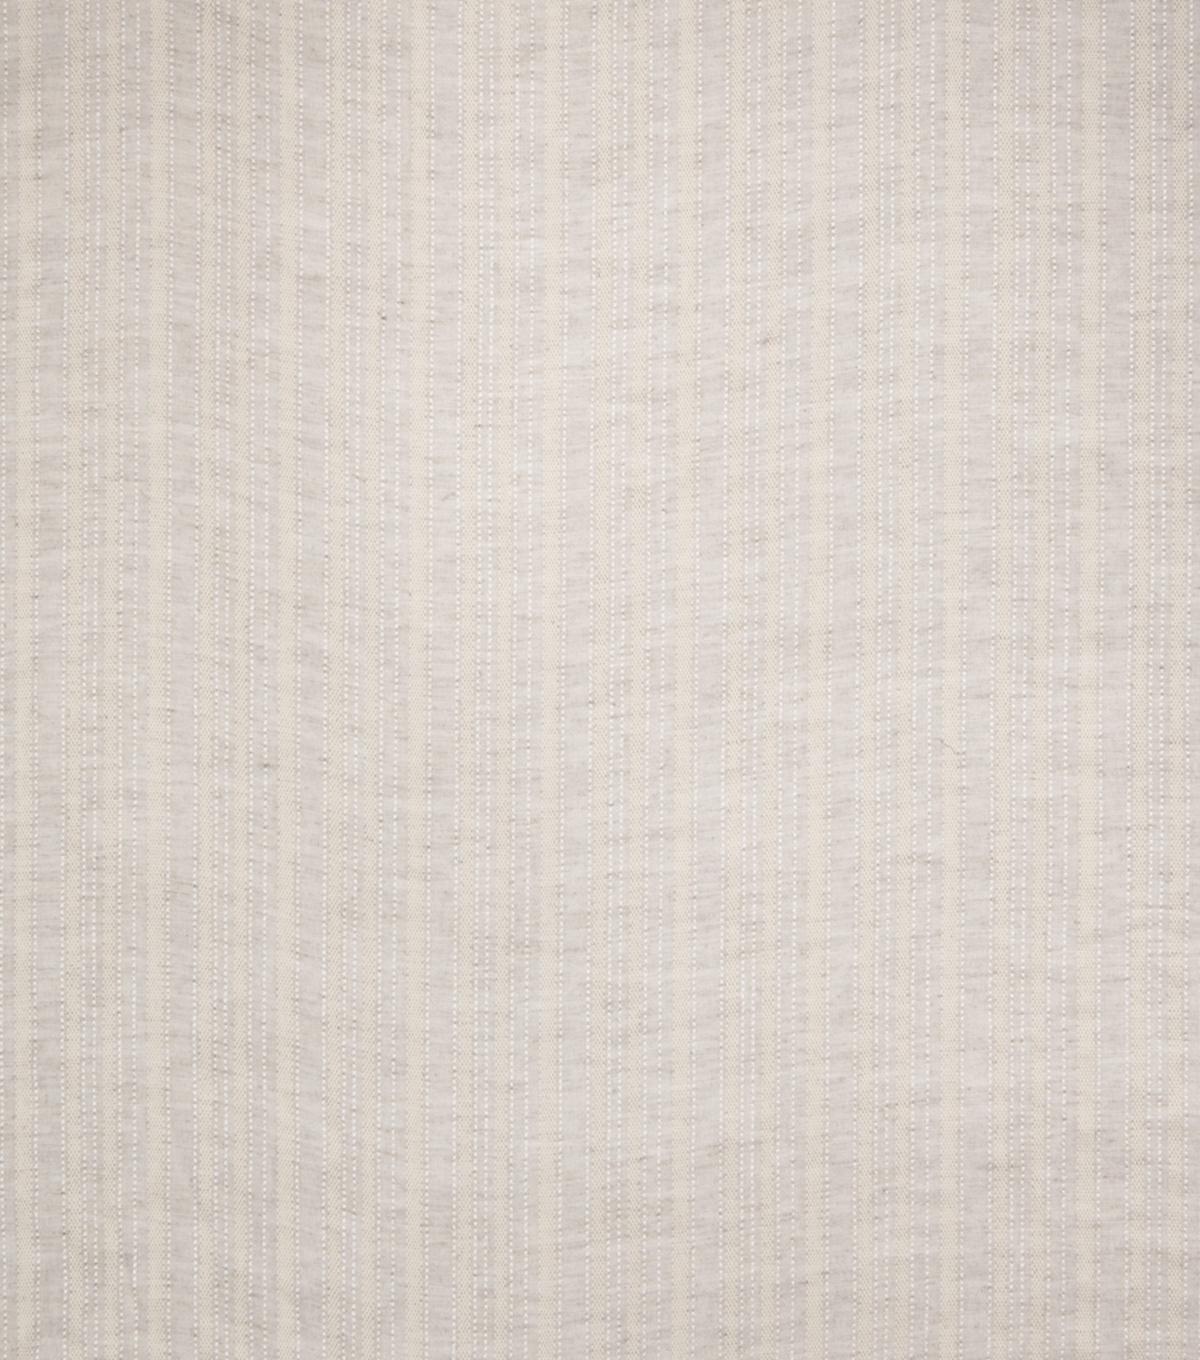 Home Decor 8\u0022x8\u0022 Fabric Swatch-Eaton Square Belita Jute